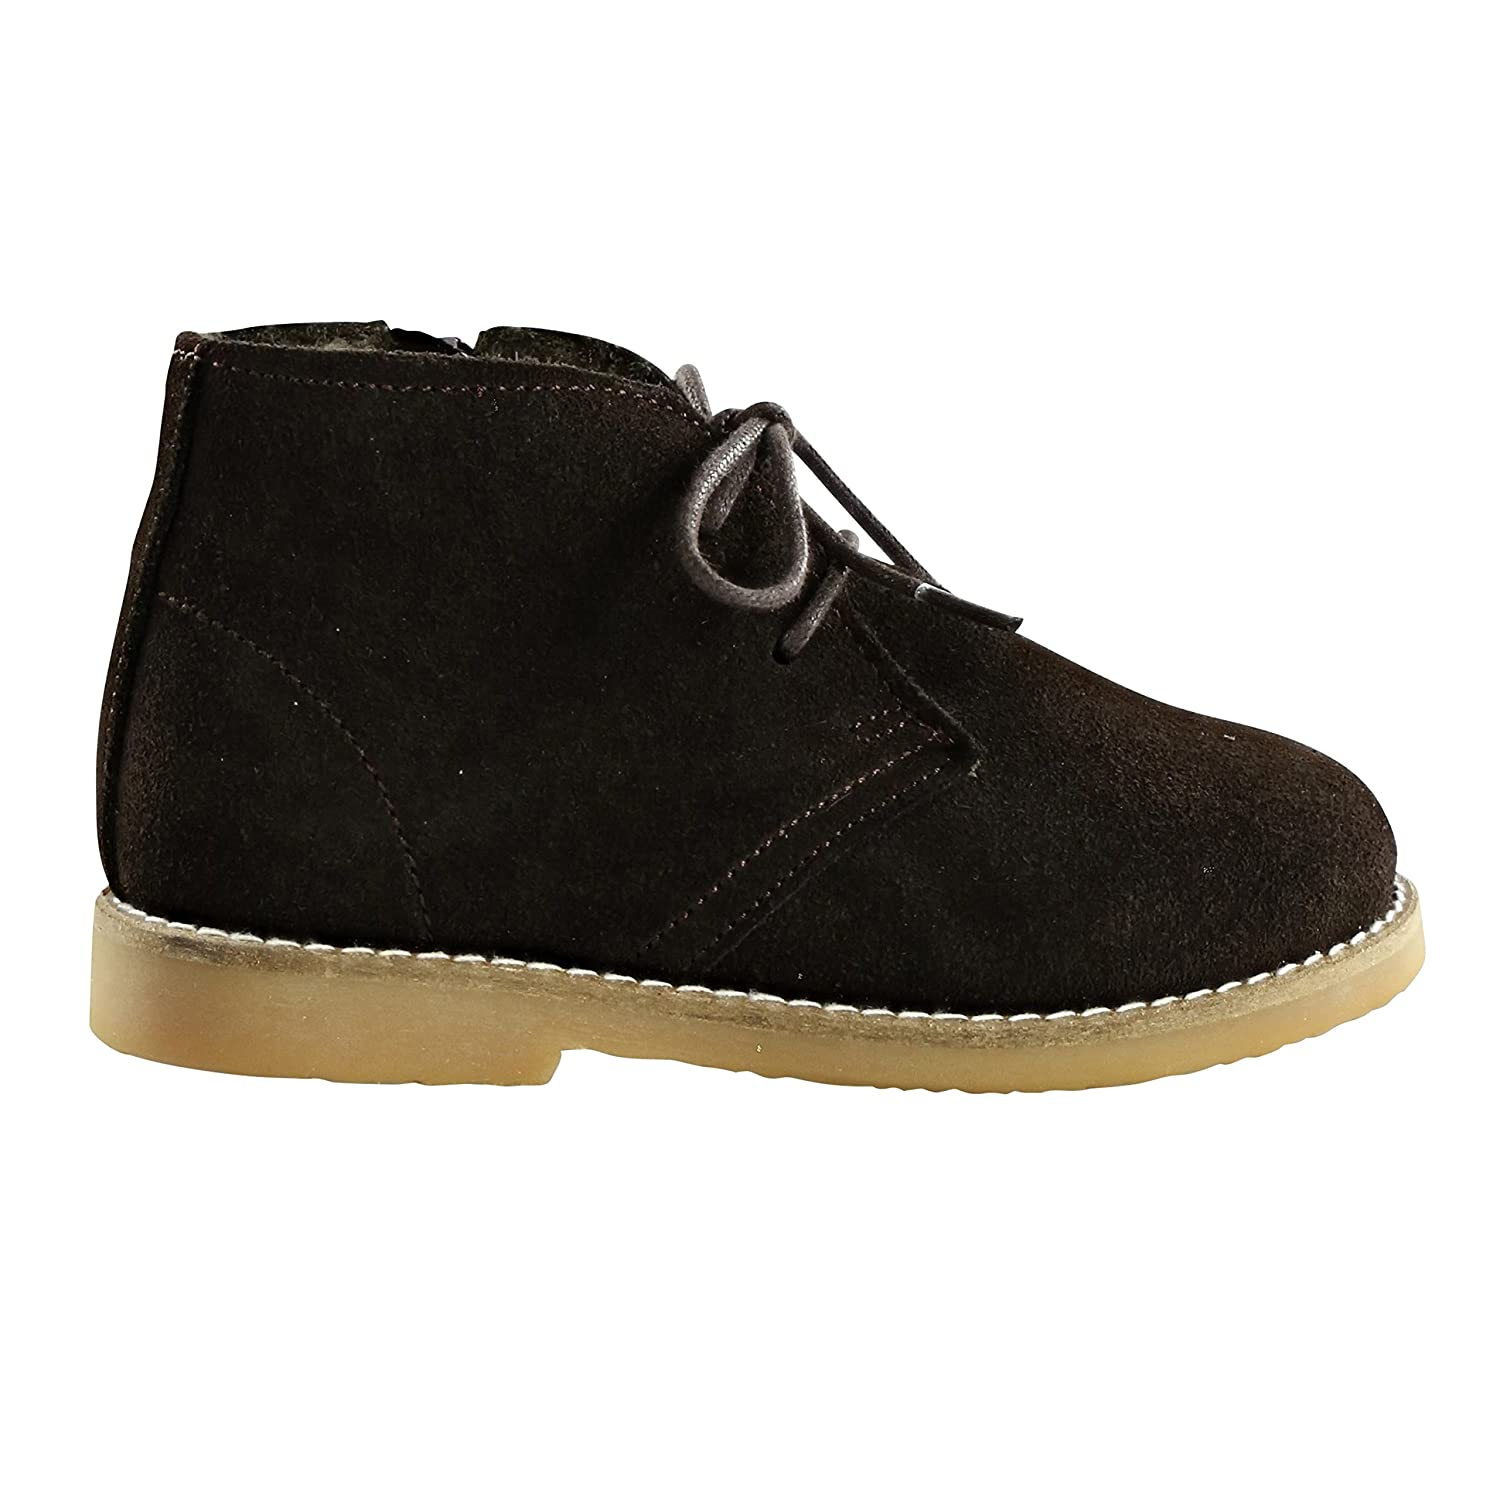 Anais /& I Girls Leather Suede Lace Up Ankle Boot